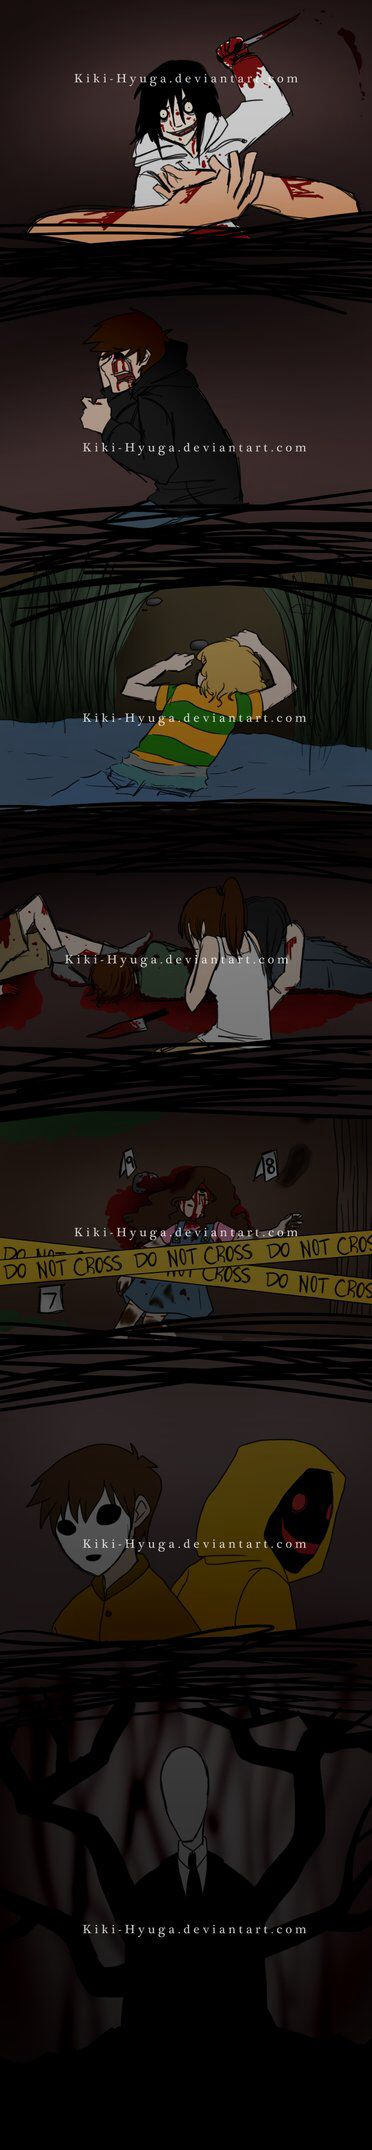 Jeff the Killer, Eyeless Jack, Ben, Jane the Killer, Sally, Masky & Hoodie, and Slenderman